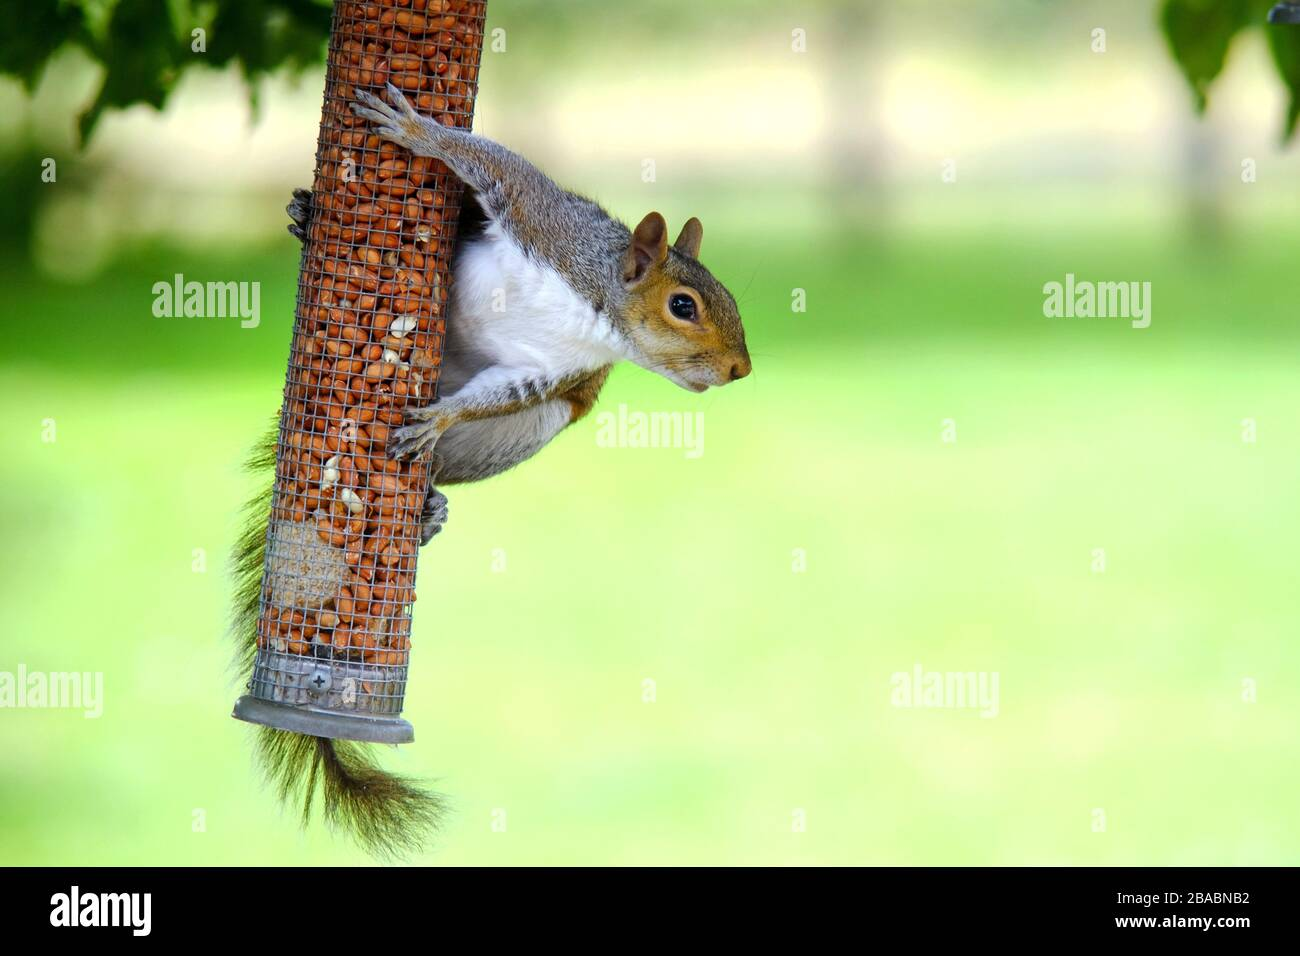 Grey squirrel on a garden bird feeder. Stock Photo